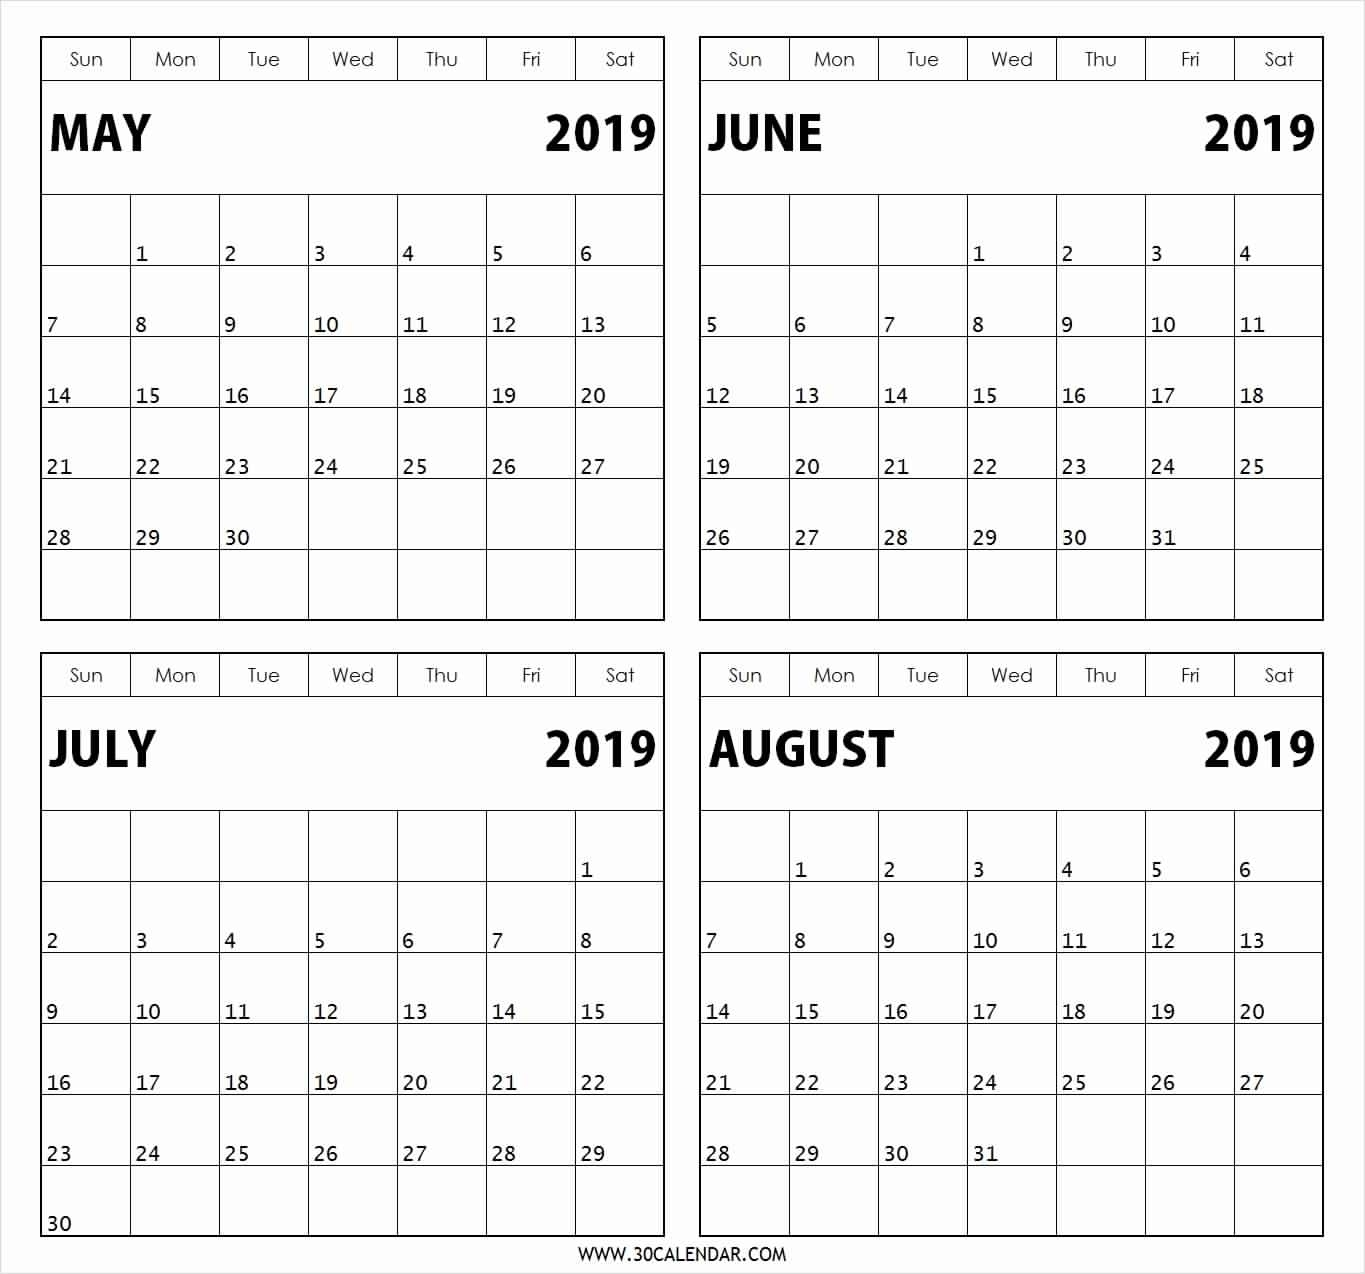 Free Printable Calendar 3 Months Per Page 2019 • Printable Blank intended for Free 3 Month Calendars To Print